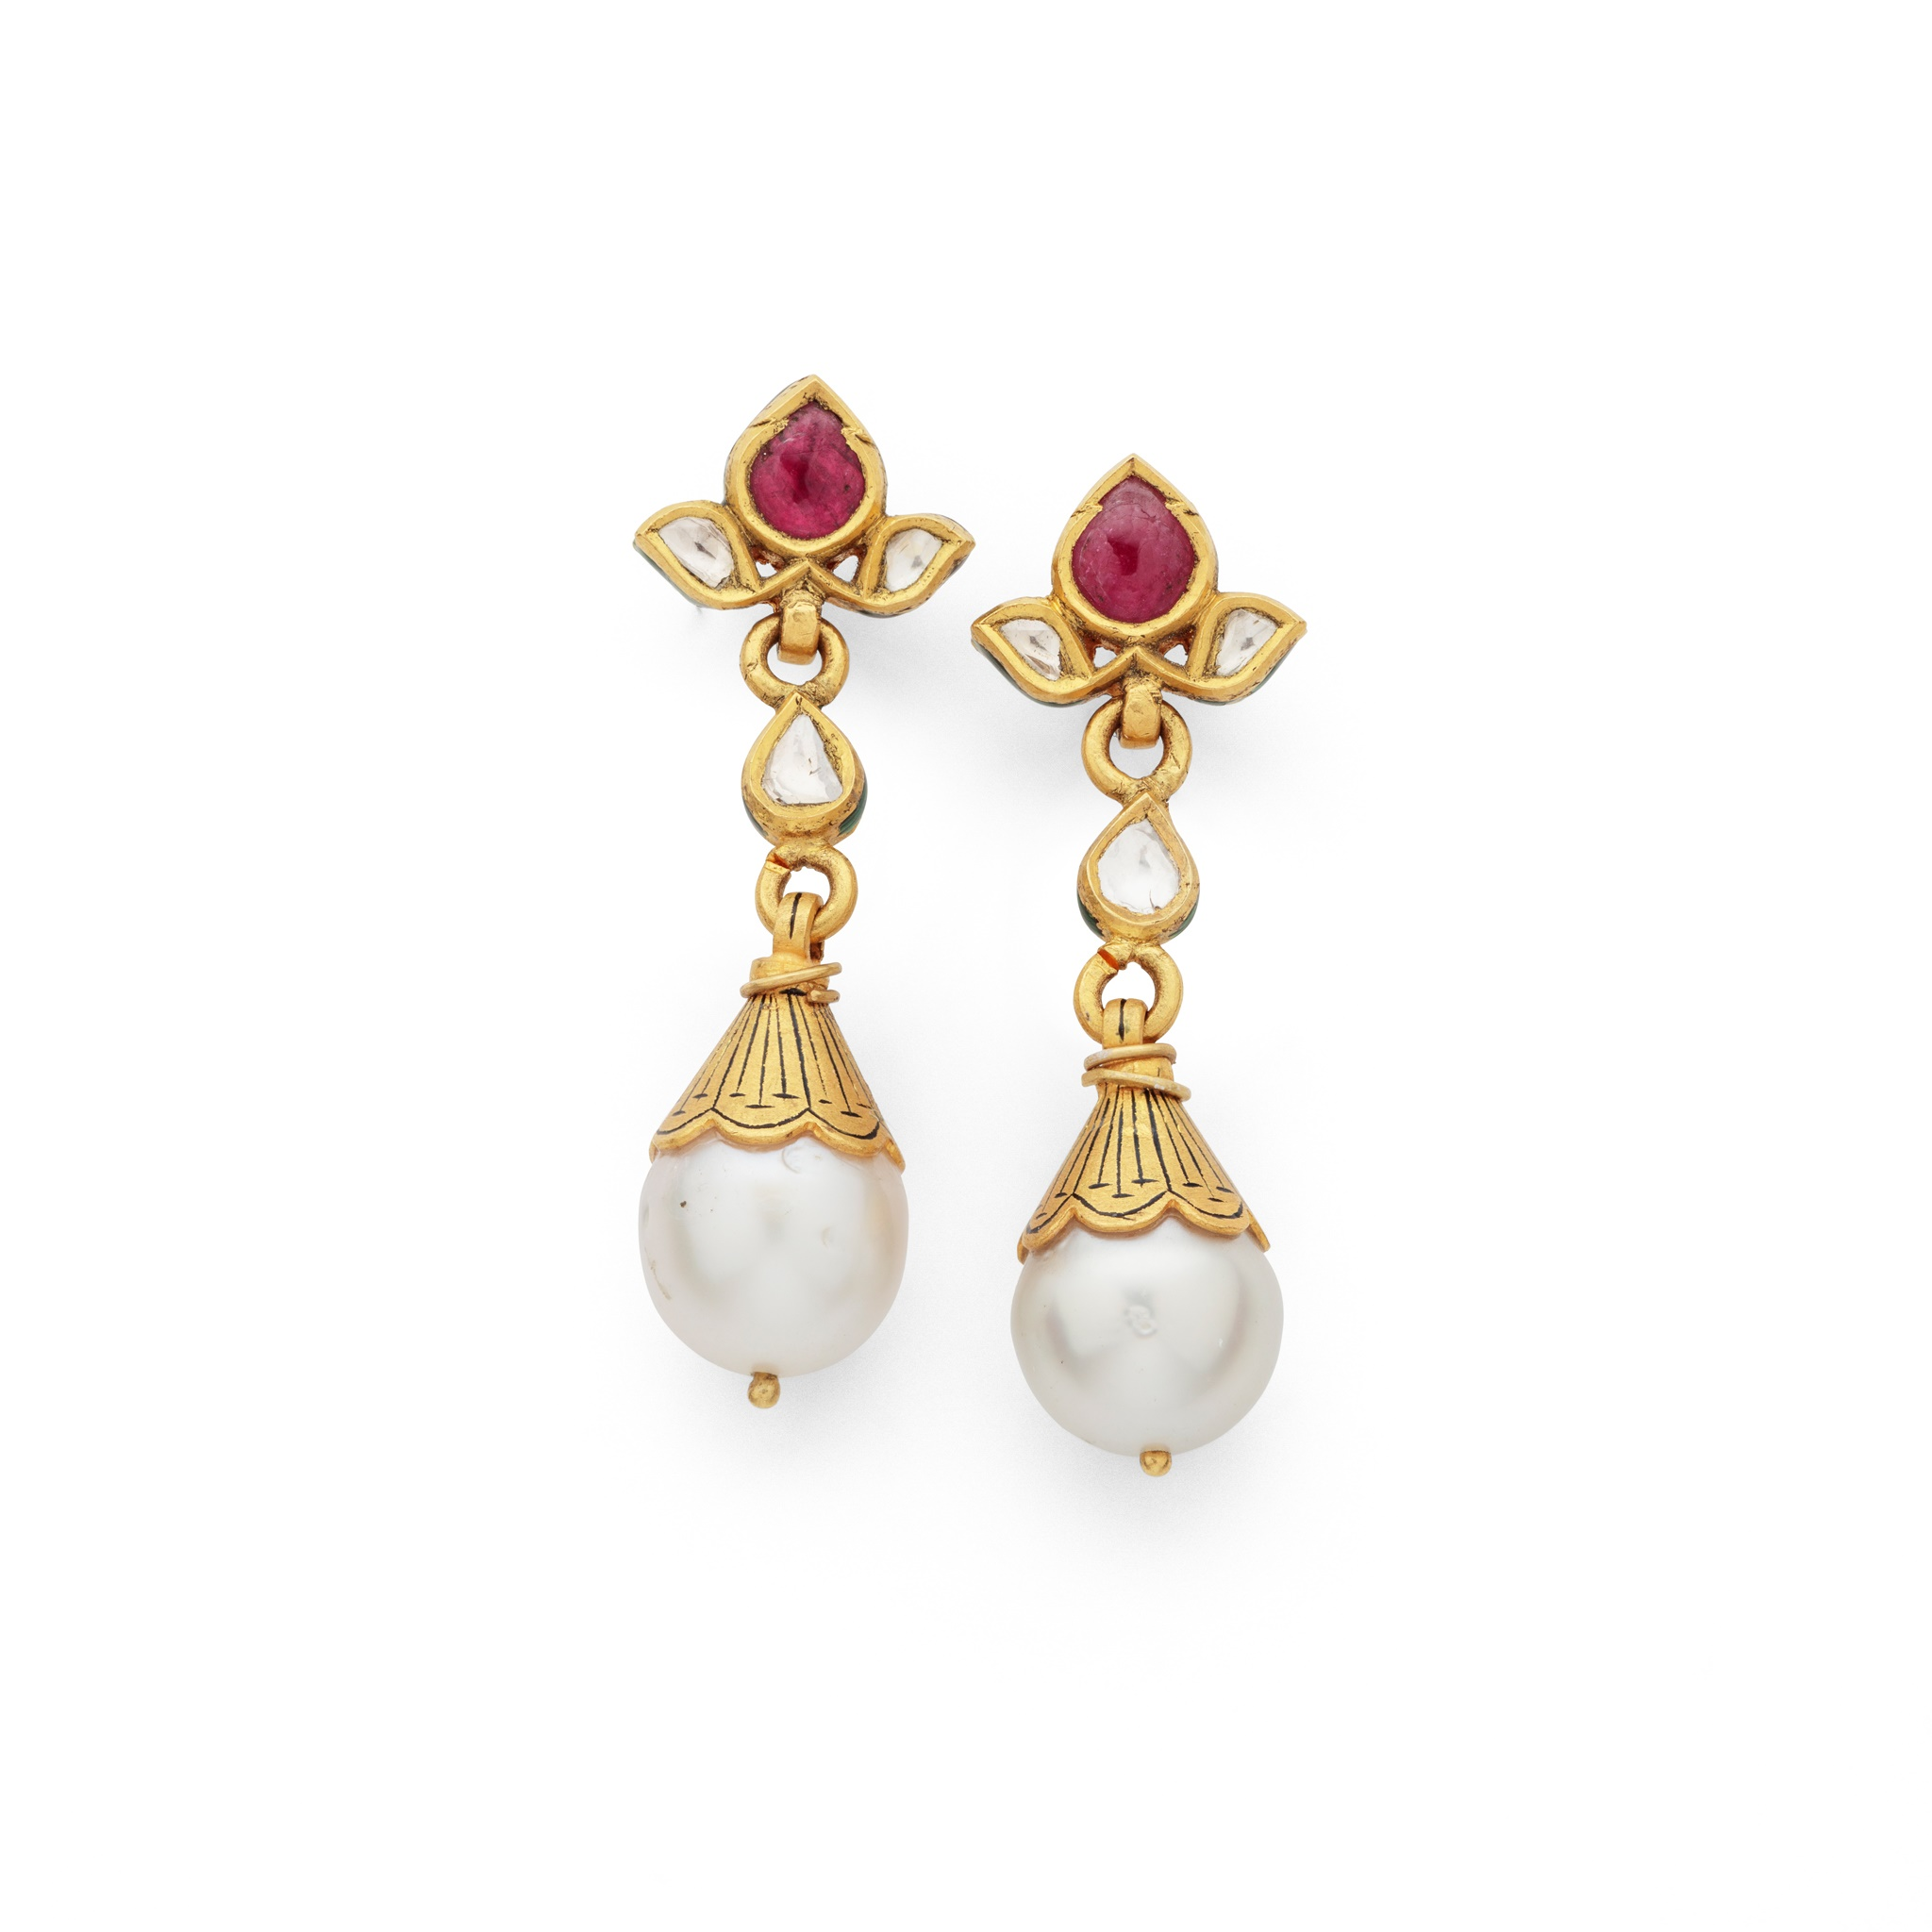 A pair of Indian gem-set pendent earrings Each 9.2mm cultured pearl with scalloped cap decorated